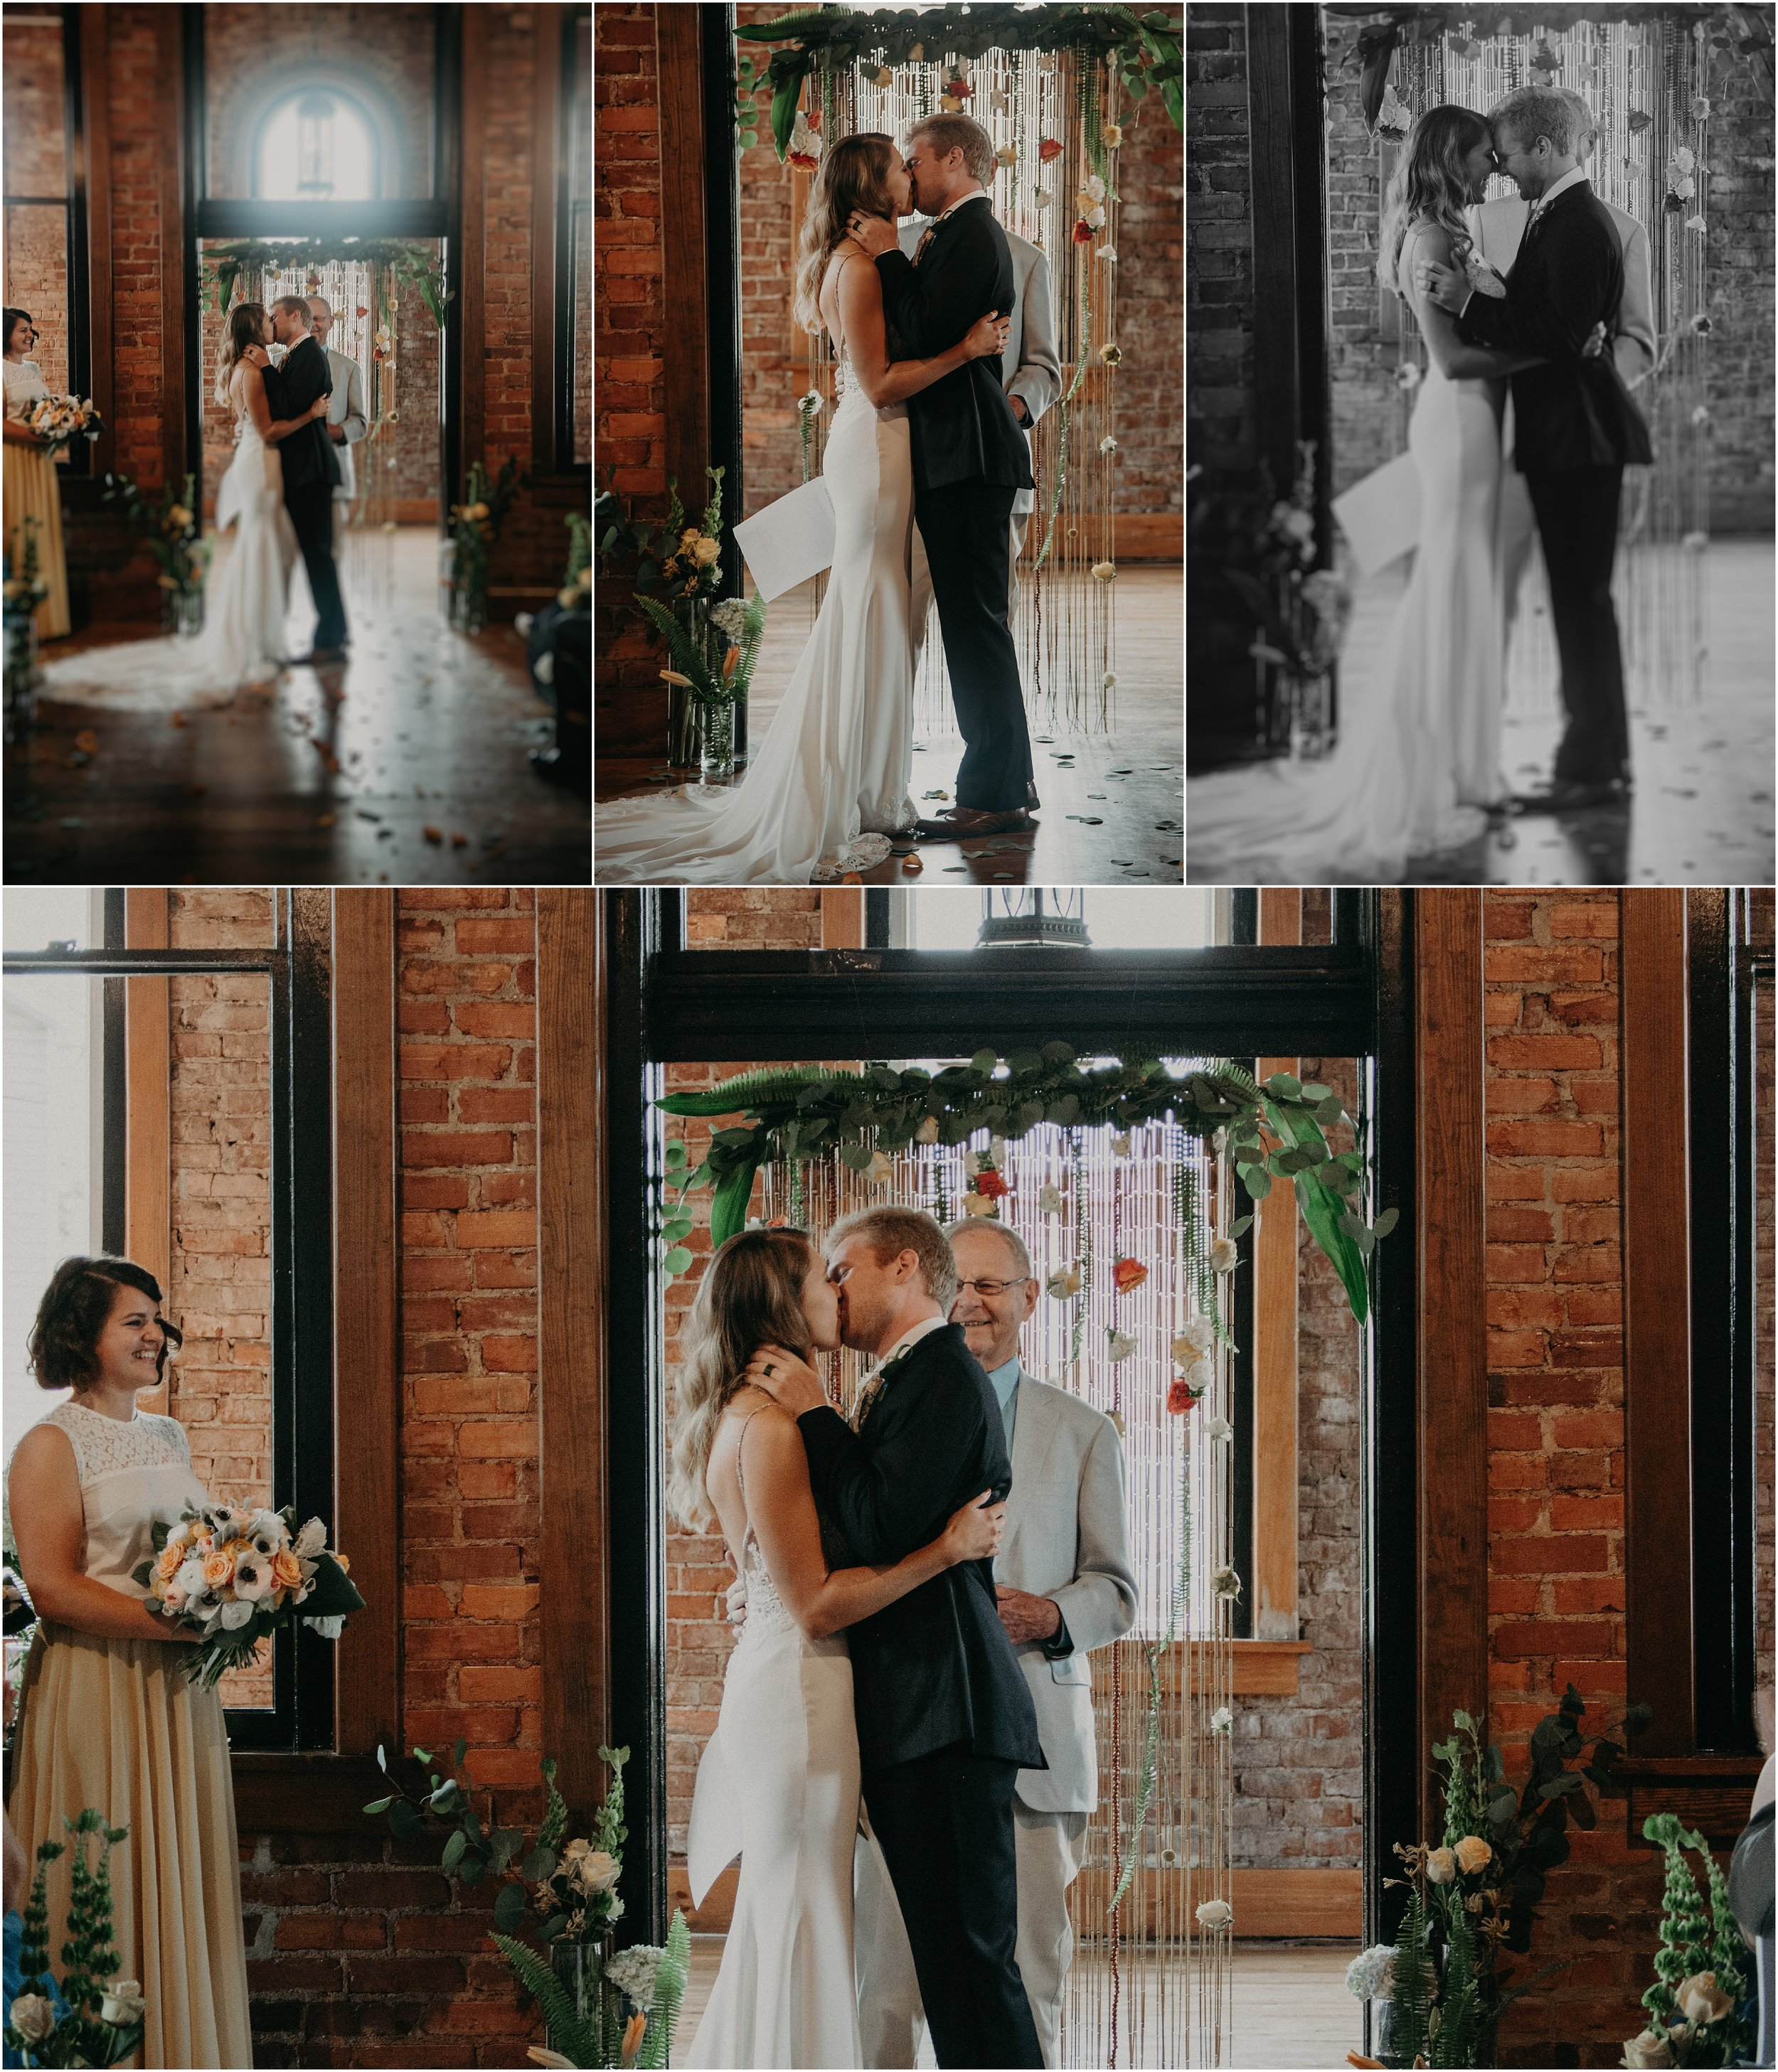 The bride and groom share their first kiss as husband and wife at the Church on Main in Chattanooga, Tennessee